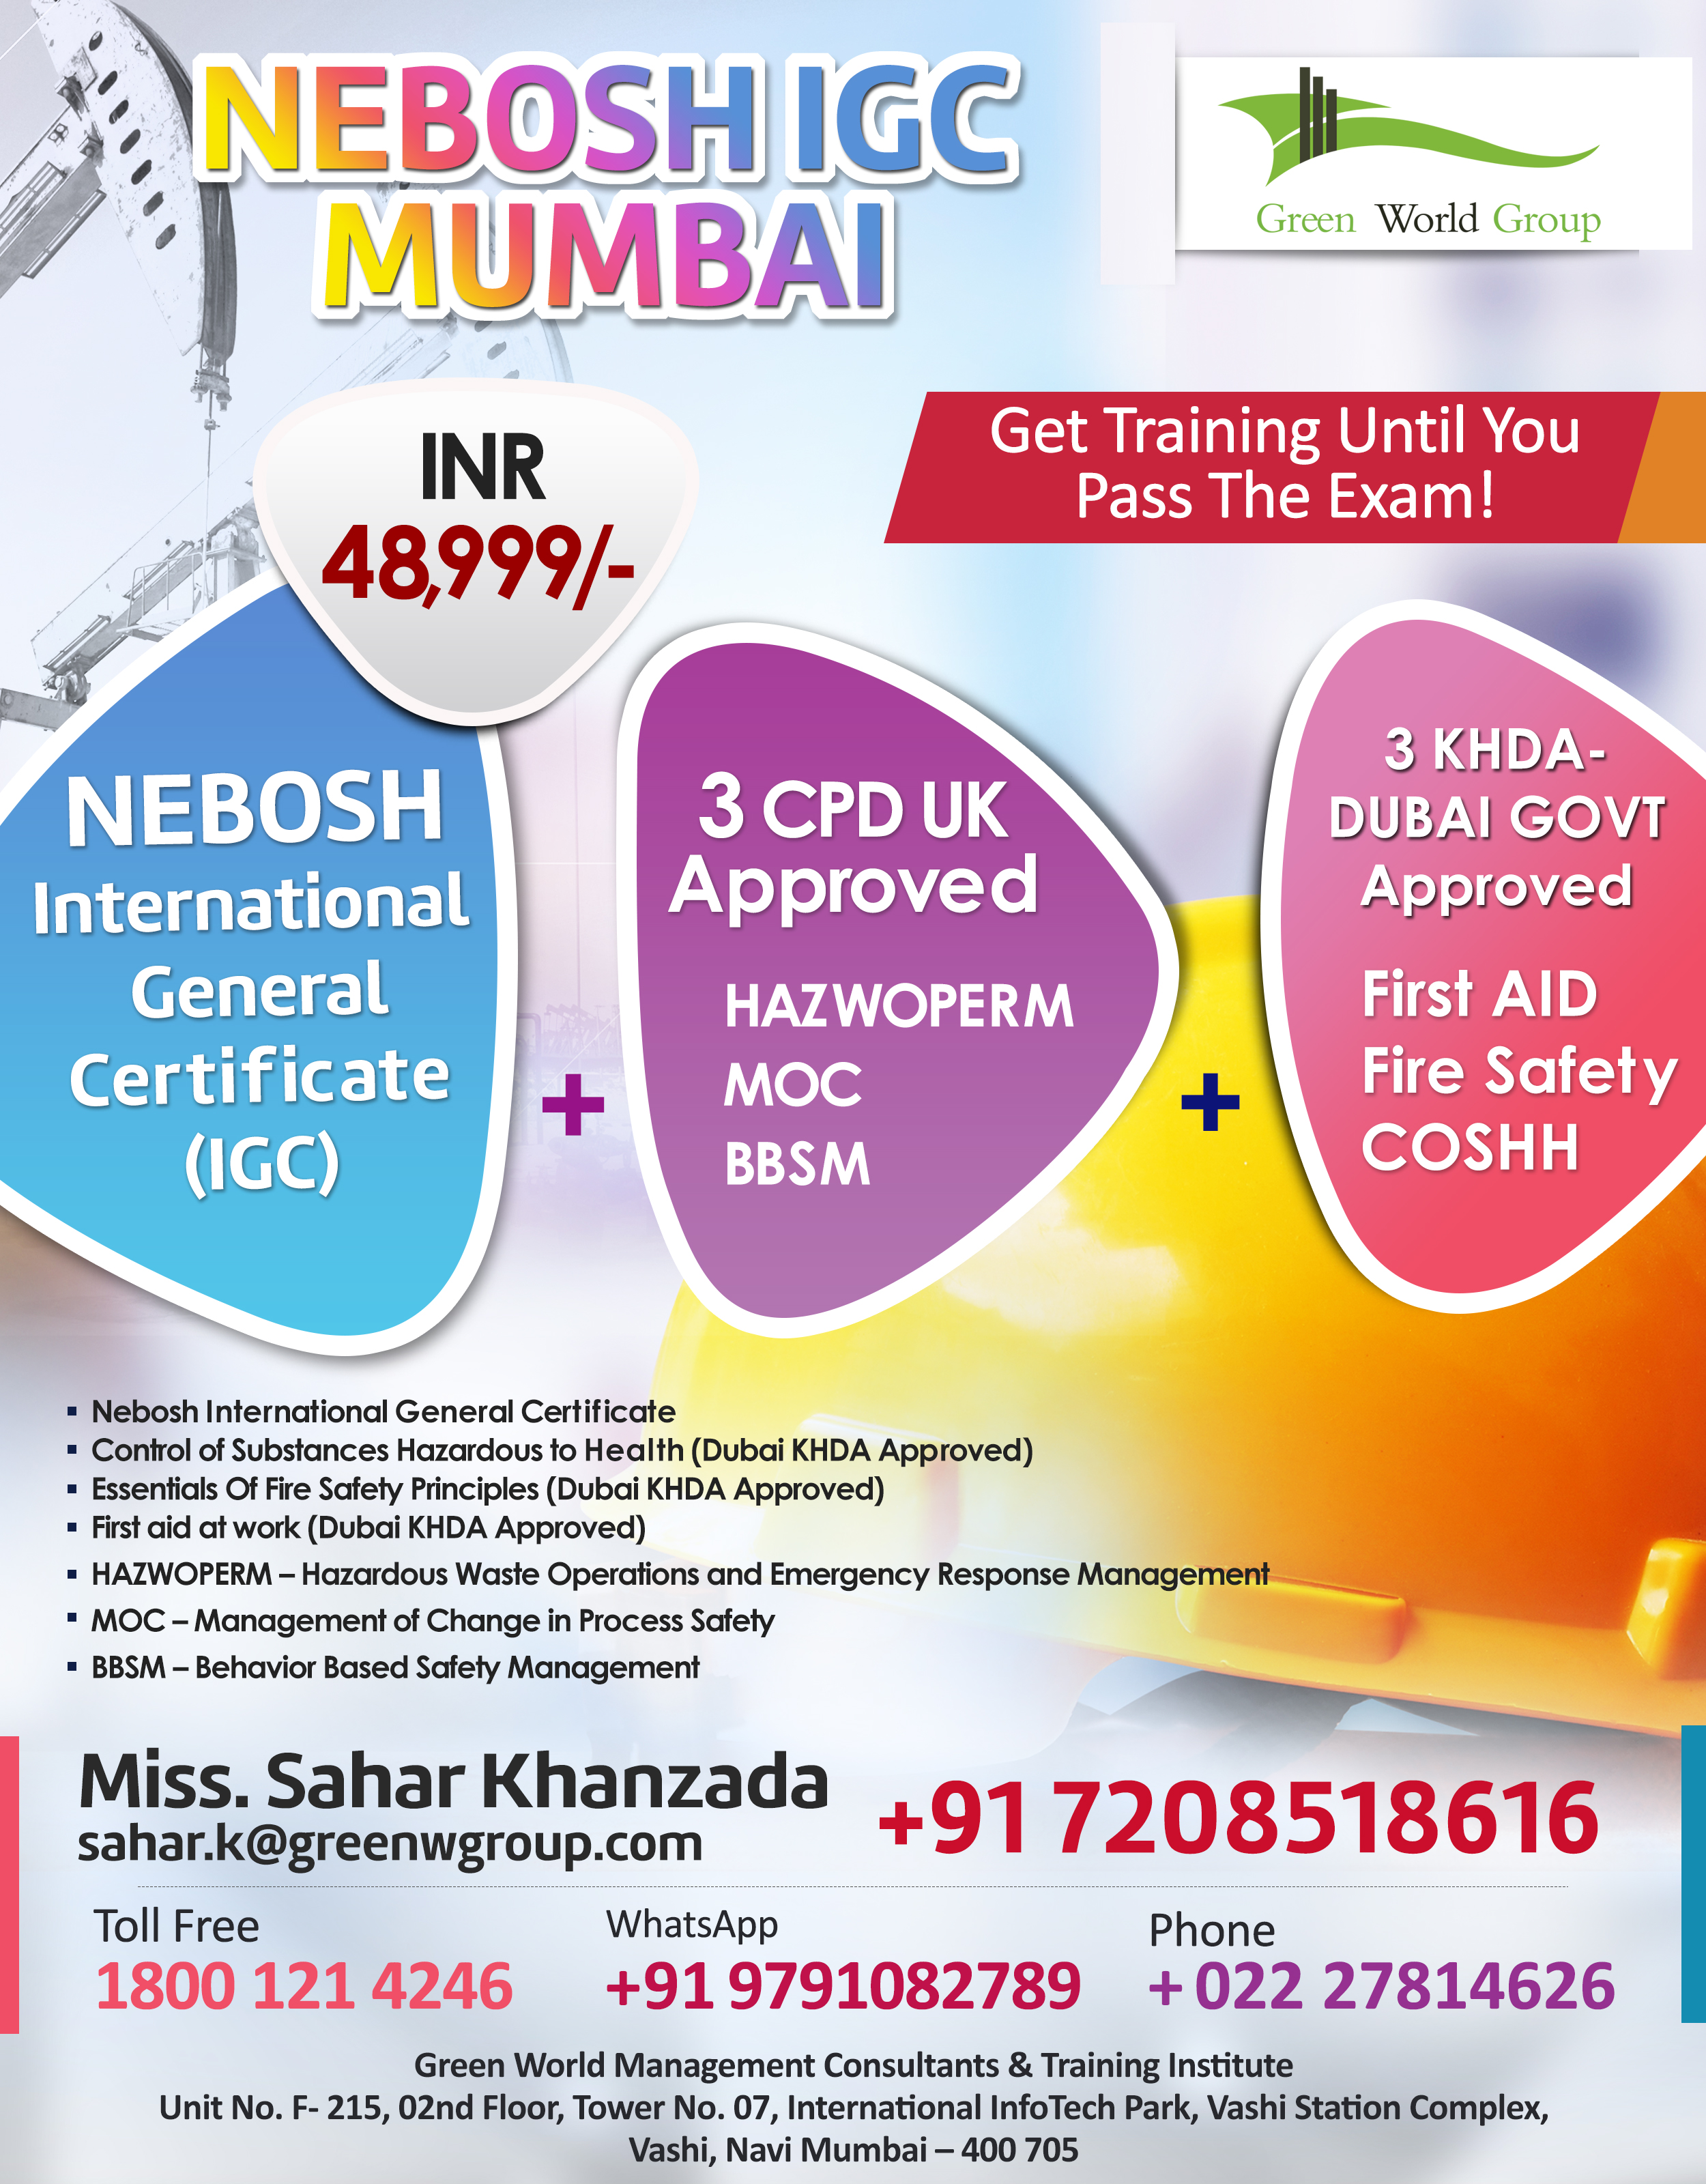 Nebosh Course In Mumbai Bundle Offer Excellent Training At Best Price